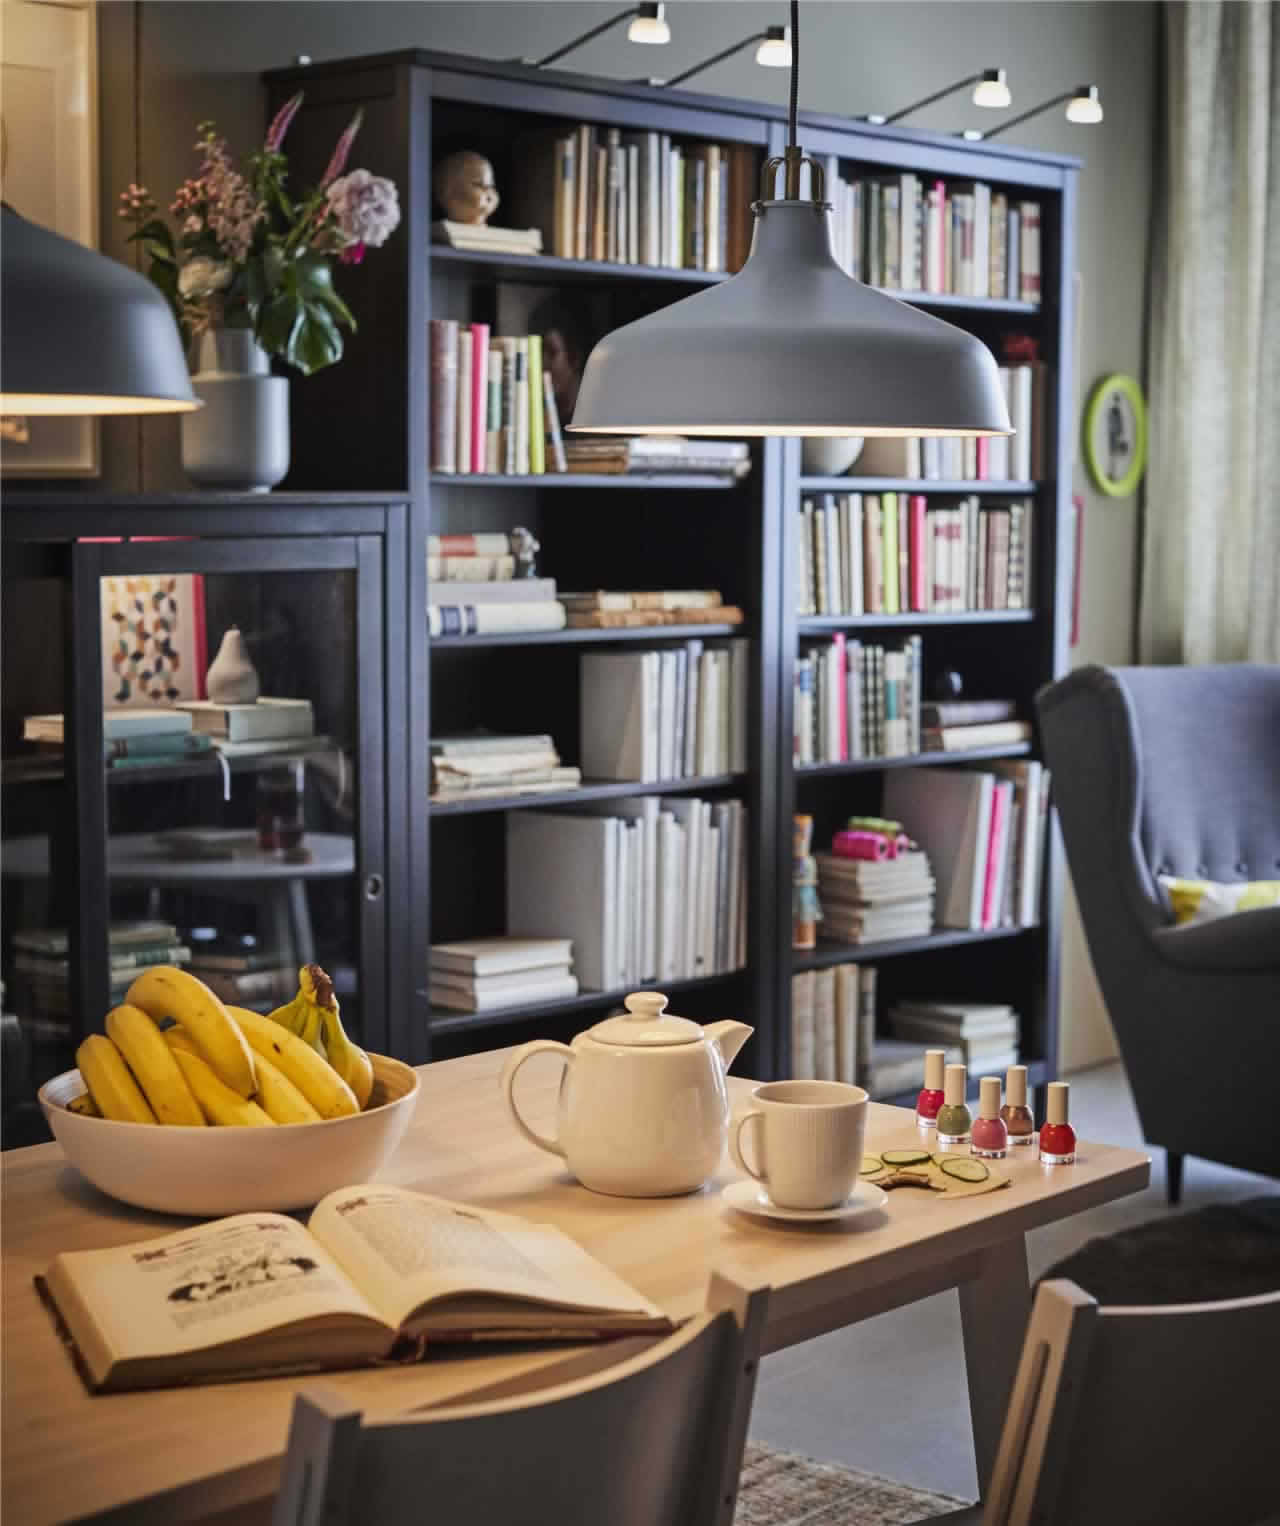 IKEA Ideas - A few easy ways to light up your life